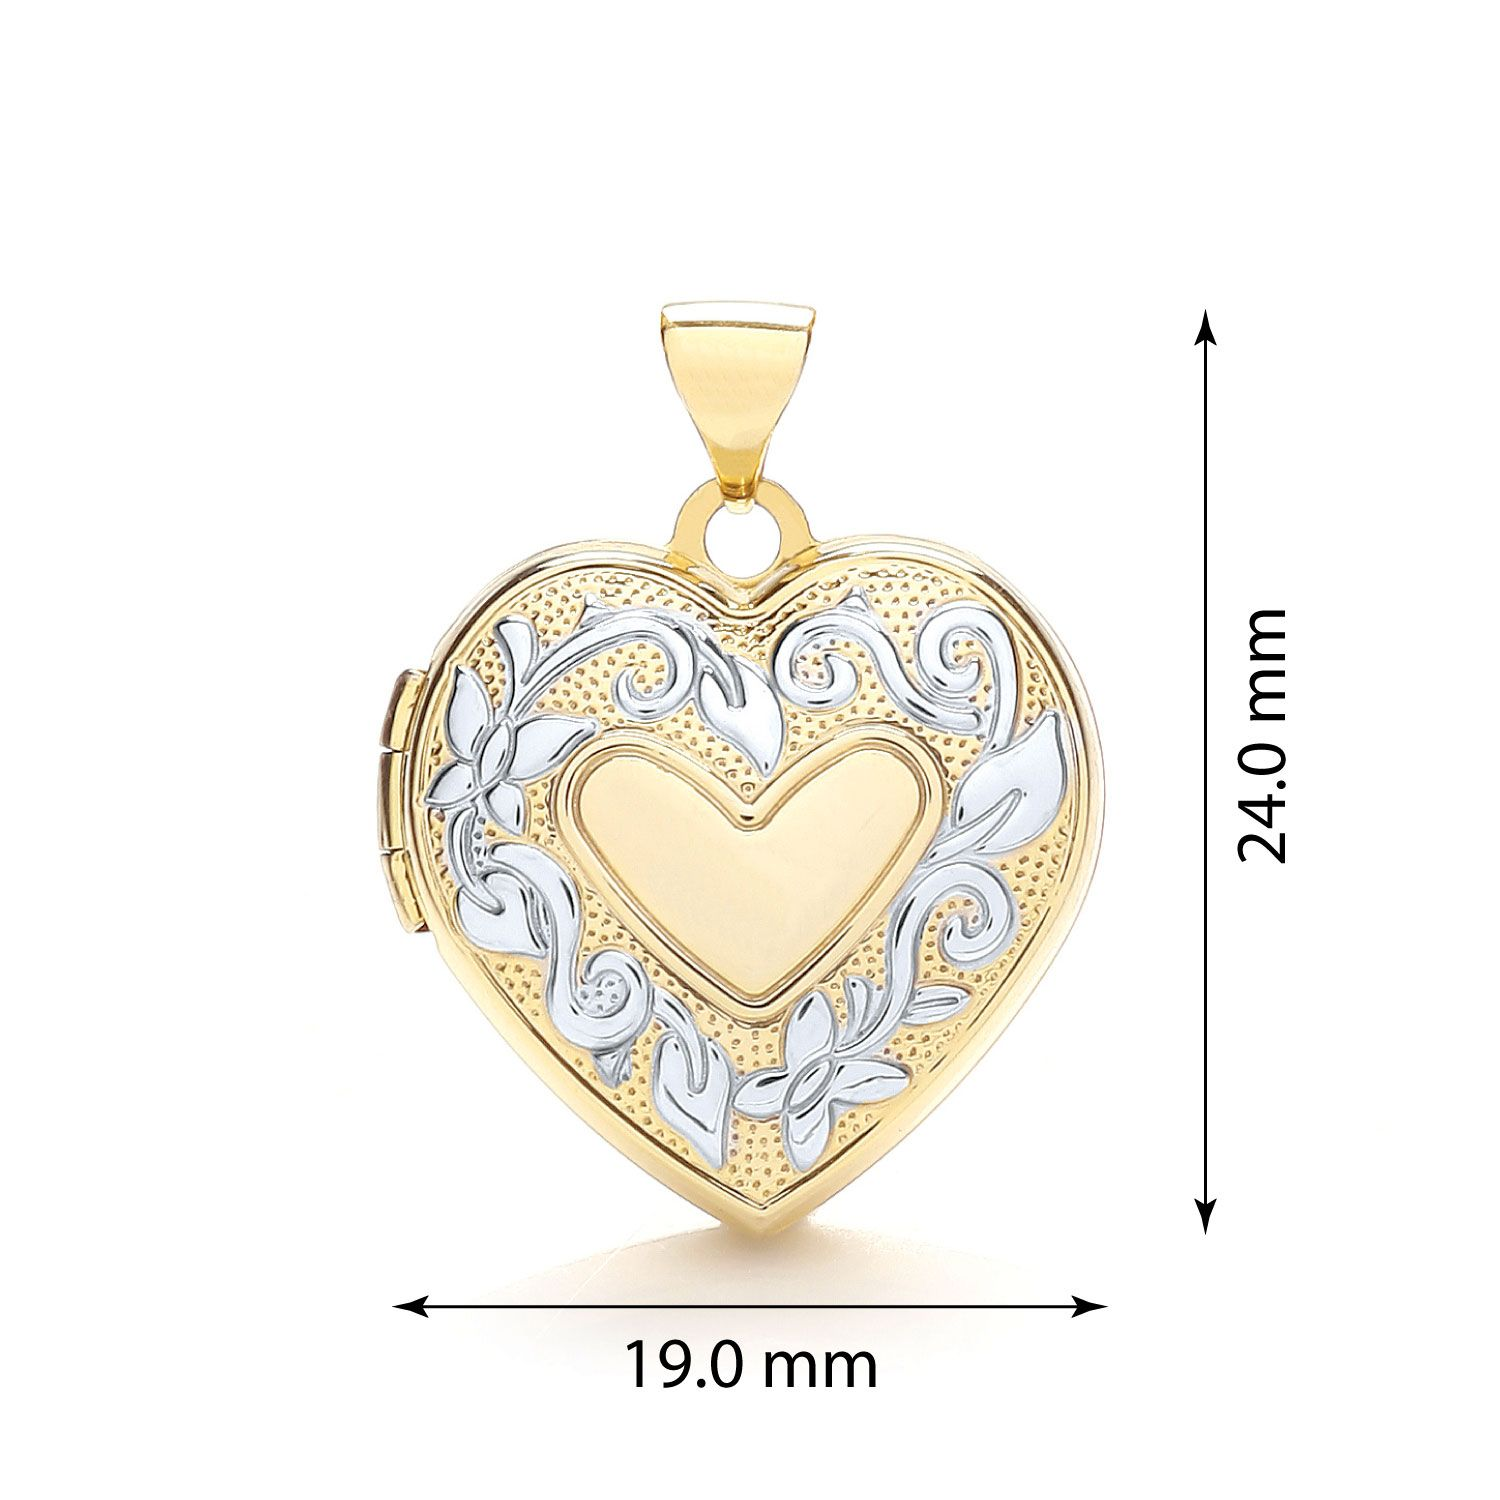 9ct Yellow and White Gold Heart Shaped Family Locket Gold